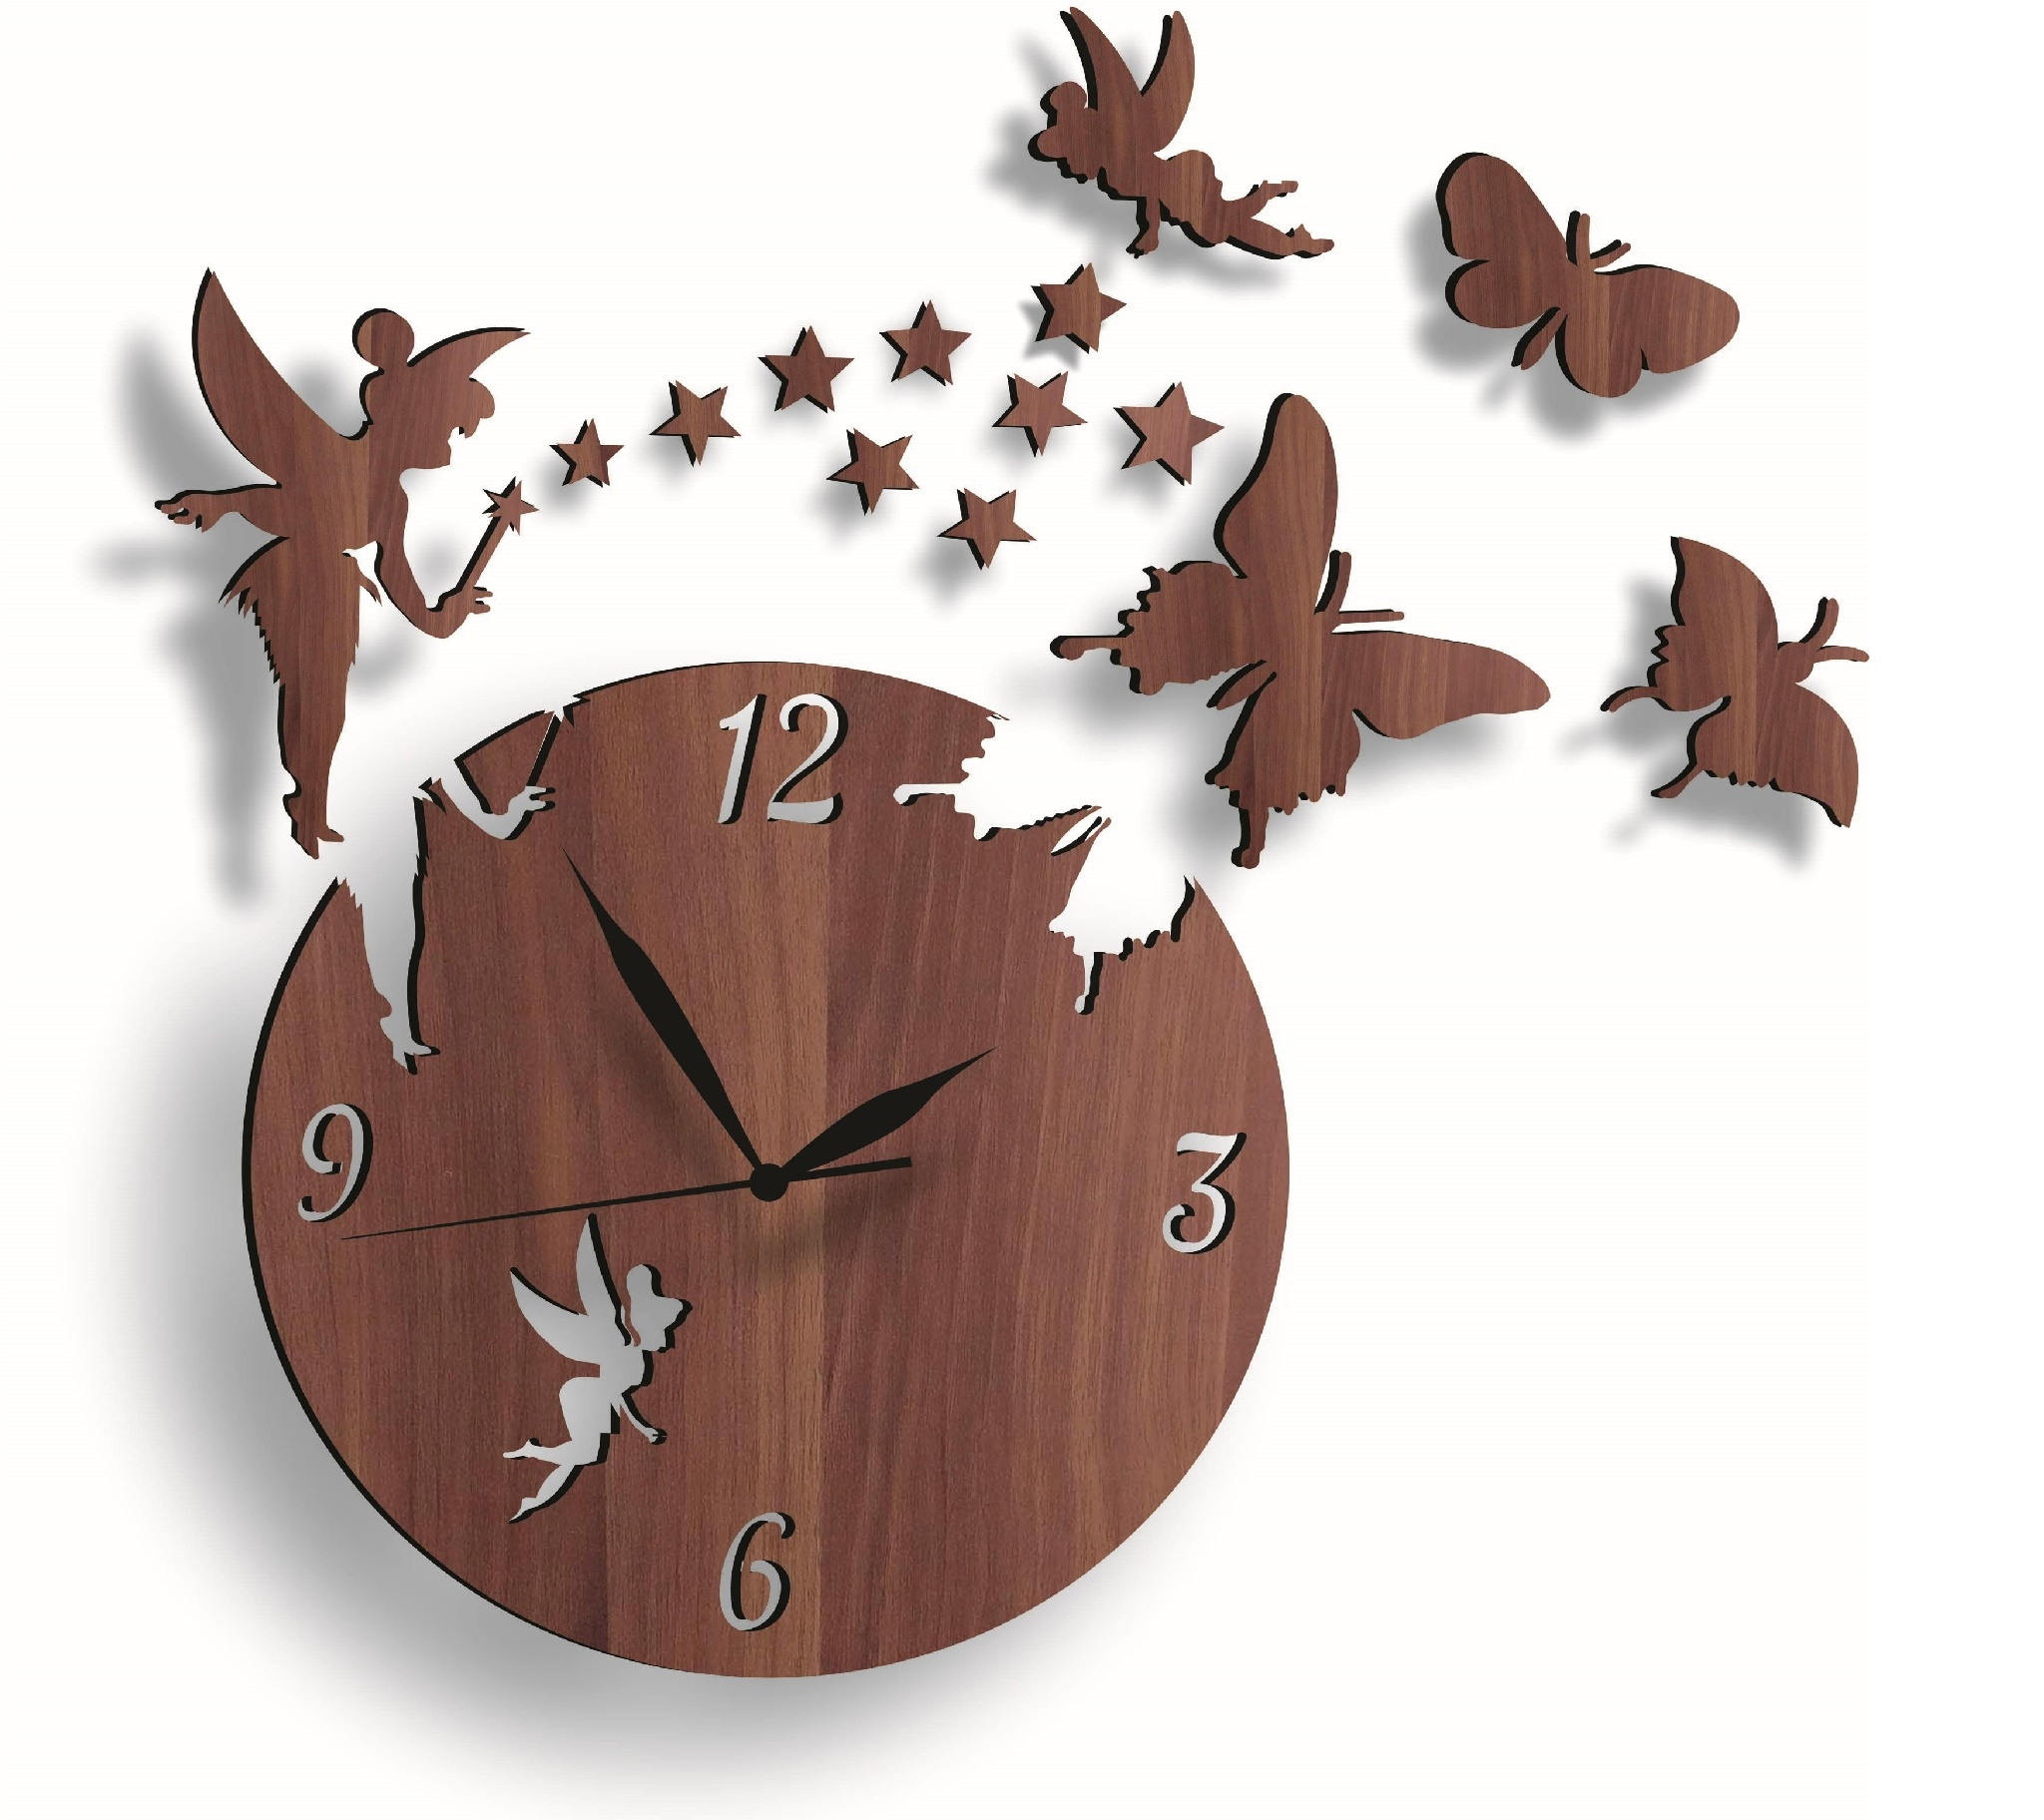 3D Home Decor wooden Wall Clock In Modern Fairy With Stars & Butterflies with 3mm sheet